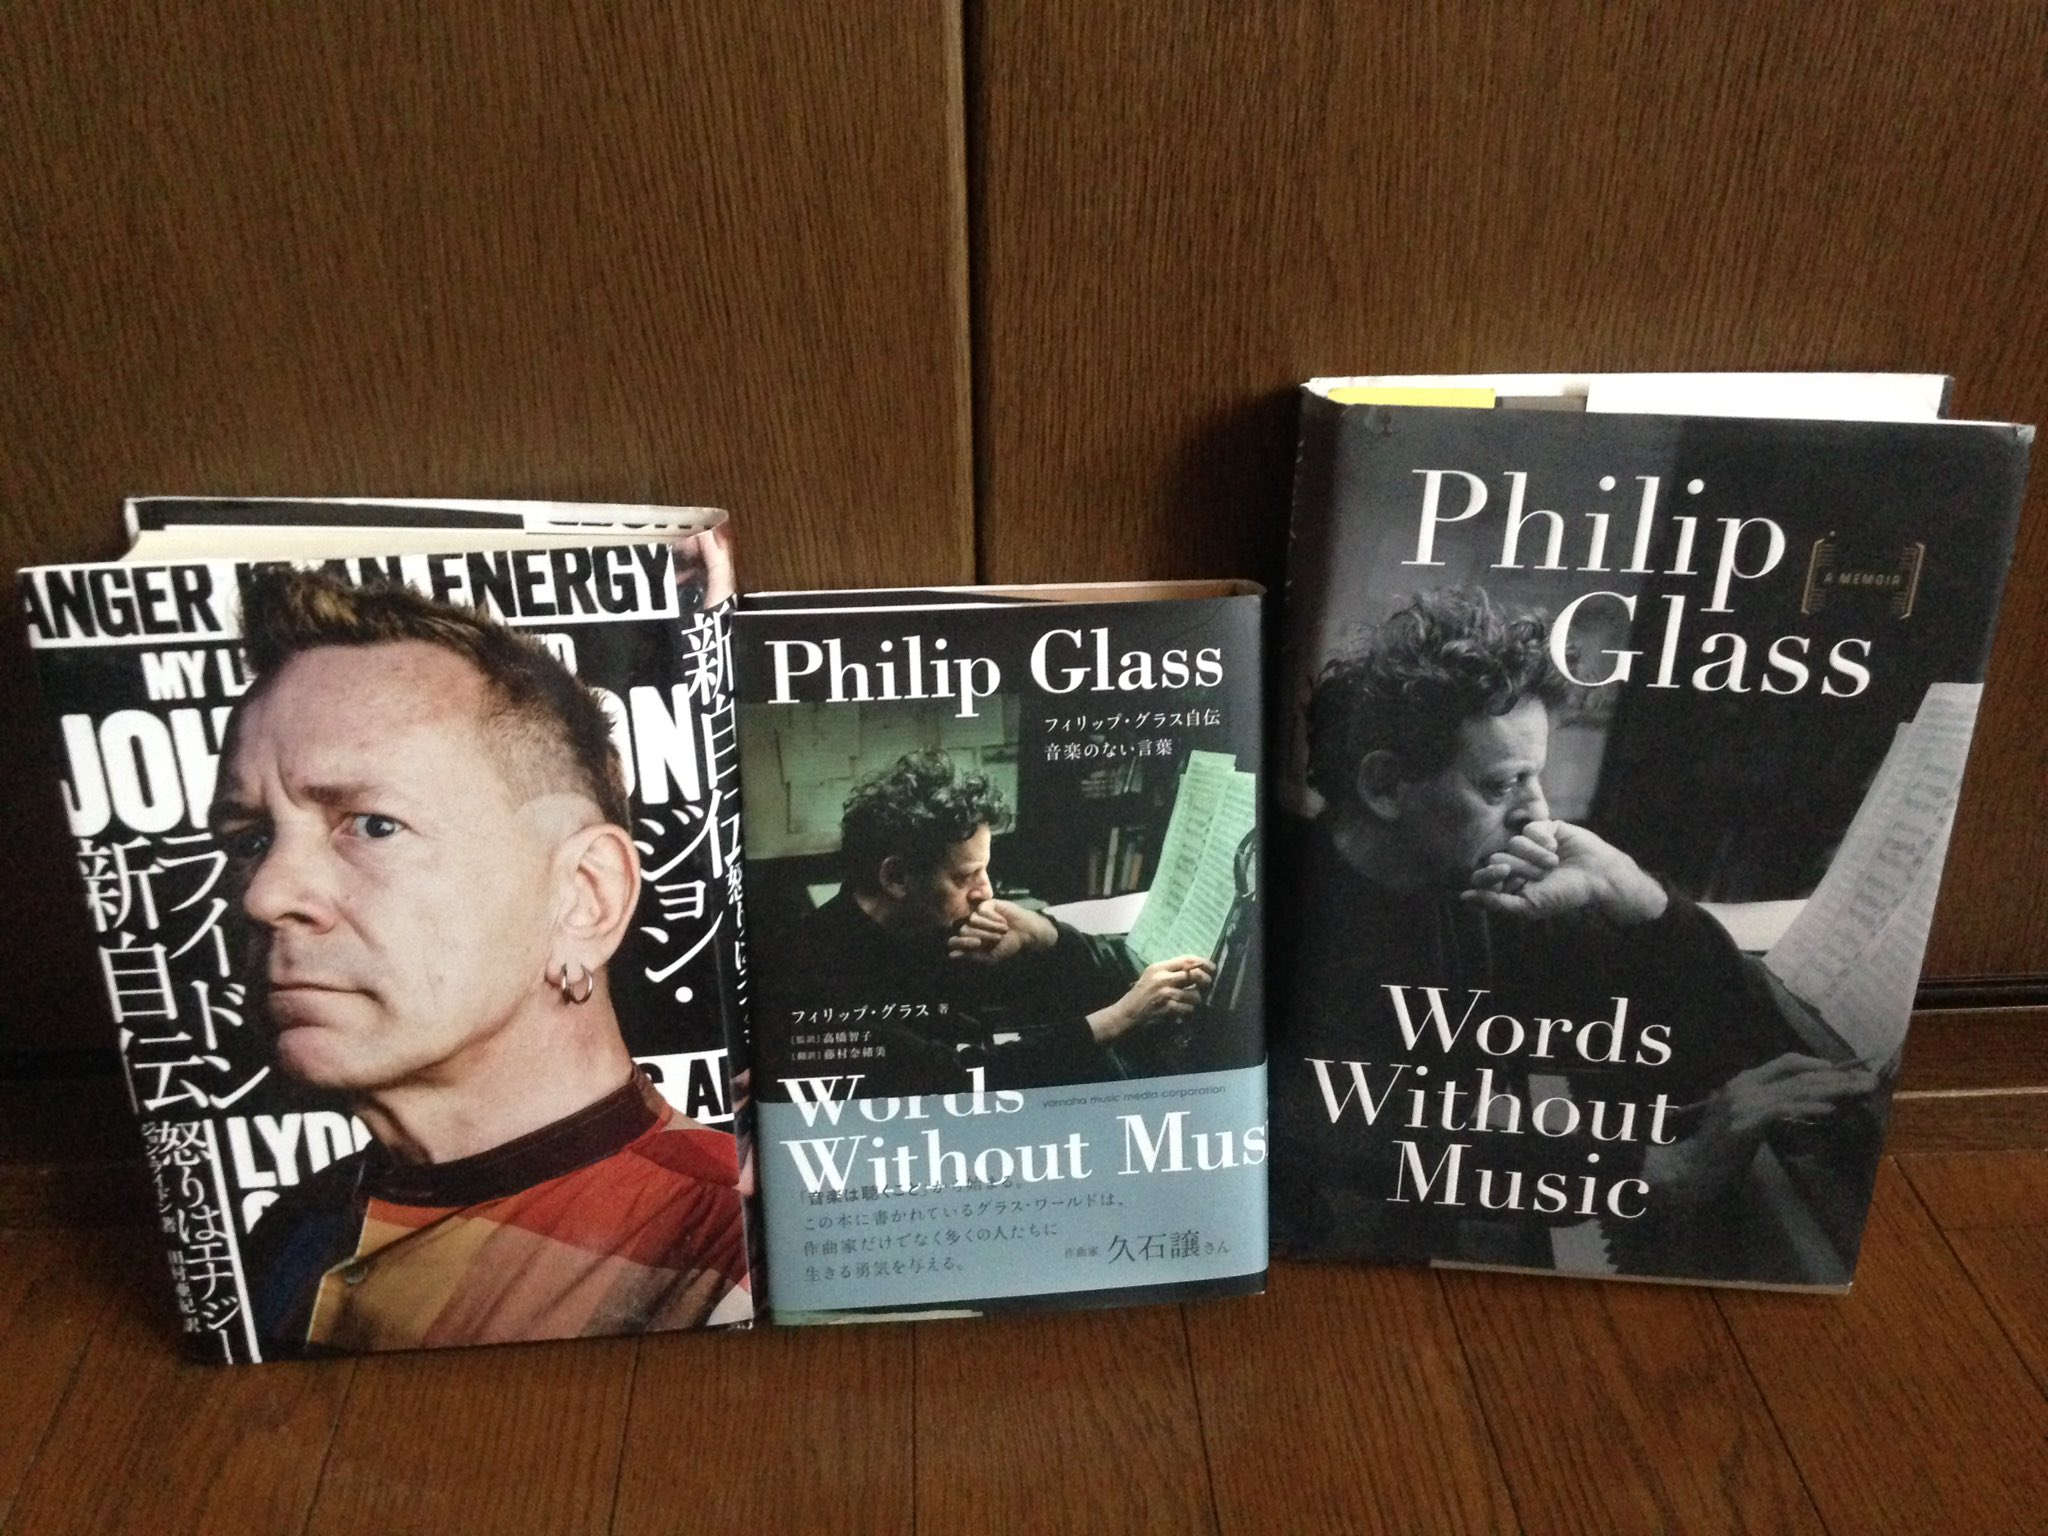 Happy Birthday! Philip Glass and John Lydon Both of you always inspire my life